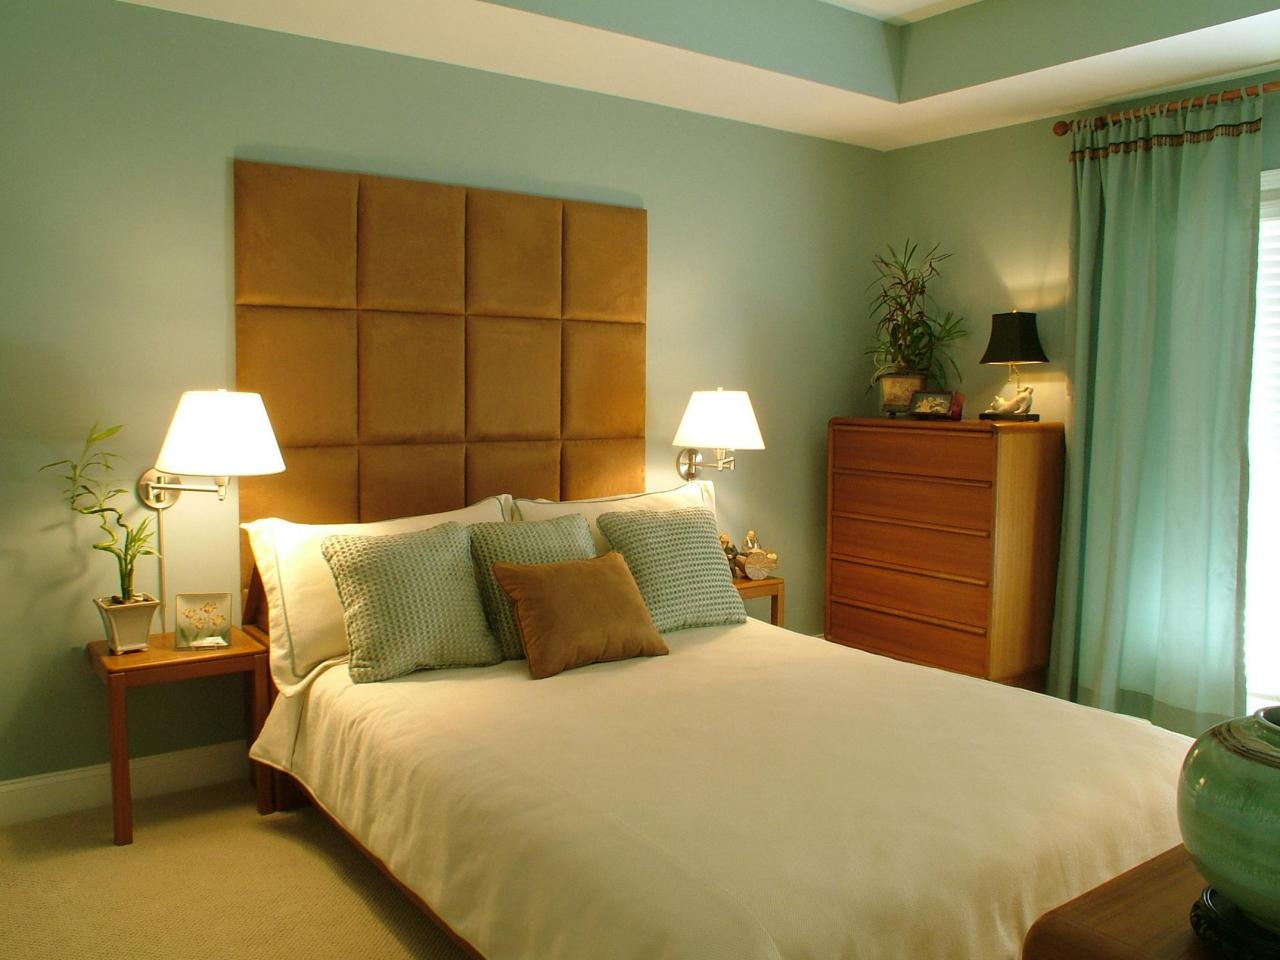 Simple Bedroom Colour bedroom wall color schemes: pictures, options & ideas | hgtv